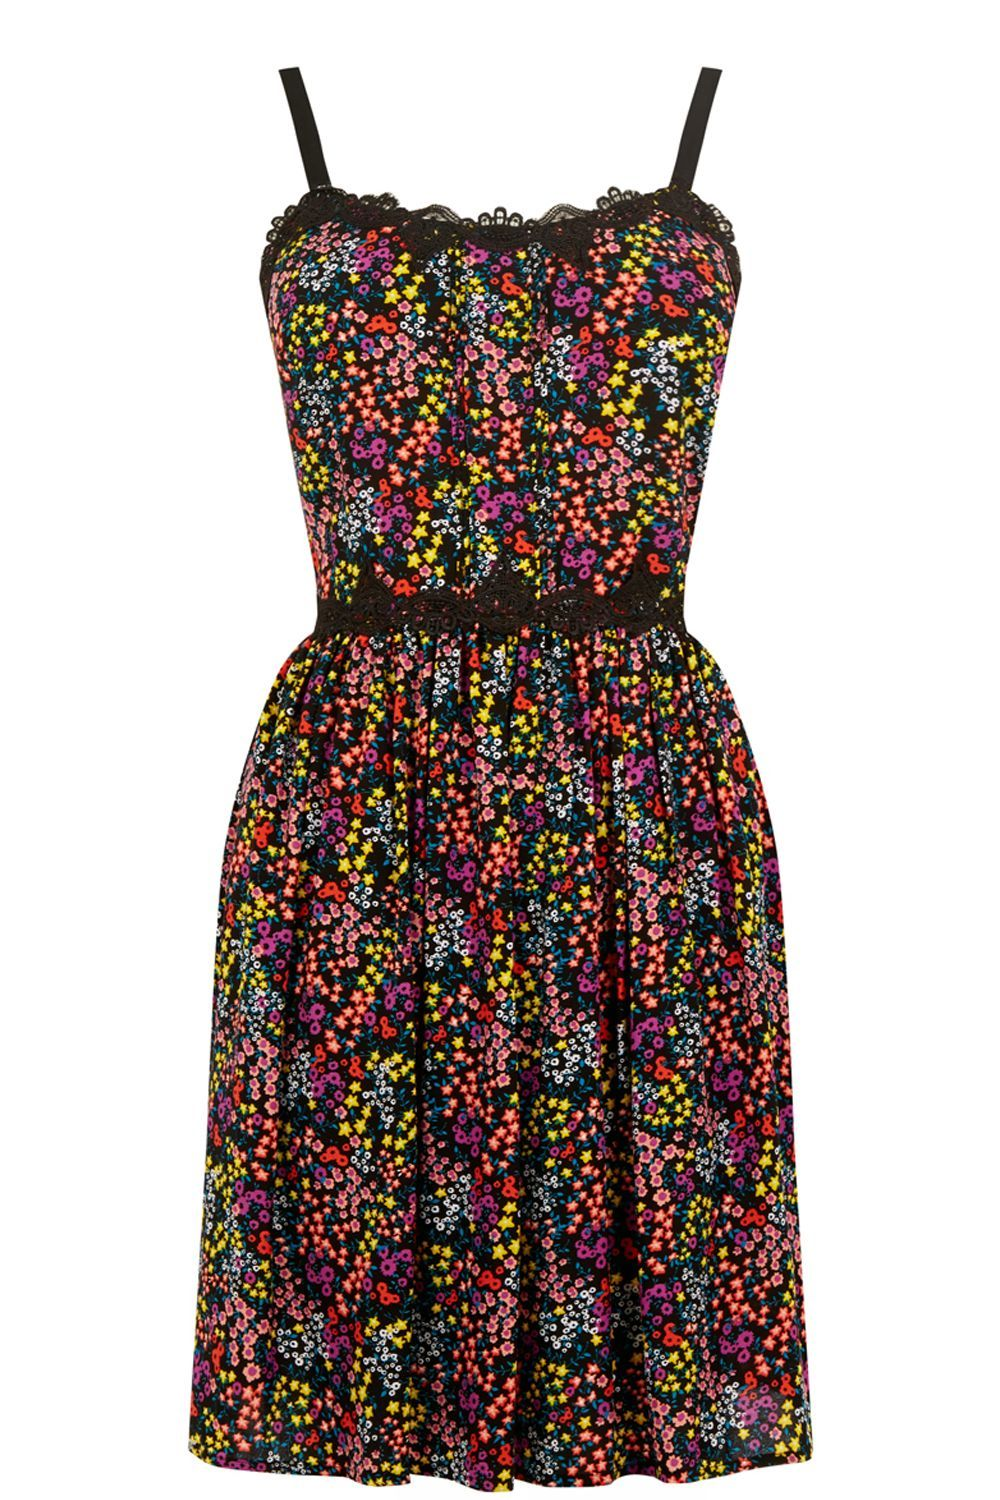 Ditsy Lace Sun Dress, Multi Coloured - neckline: round neck; sleeve style: sleeveless; secondary colour: pink; predominant colour: black; occasions: evening; length: just above the knee; fit: fitted at waist & bust; style: fit & flare; fibres: polyester/polyamide - 100%; sleeve length: sleeveless; pattern type: fabric; pattern: patterned/print; texture group: jersey - stretchy/drapey; embellishment: lace; multicoloured: multicoloured; season: s/s 2016; wardrobe: event